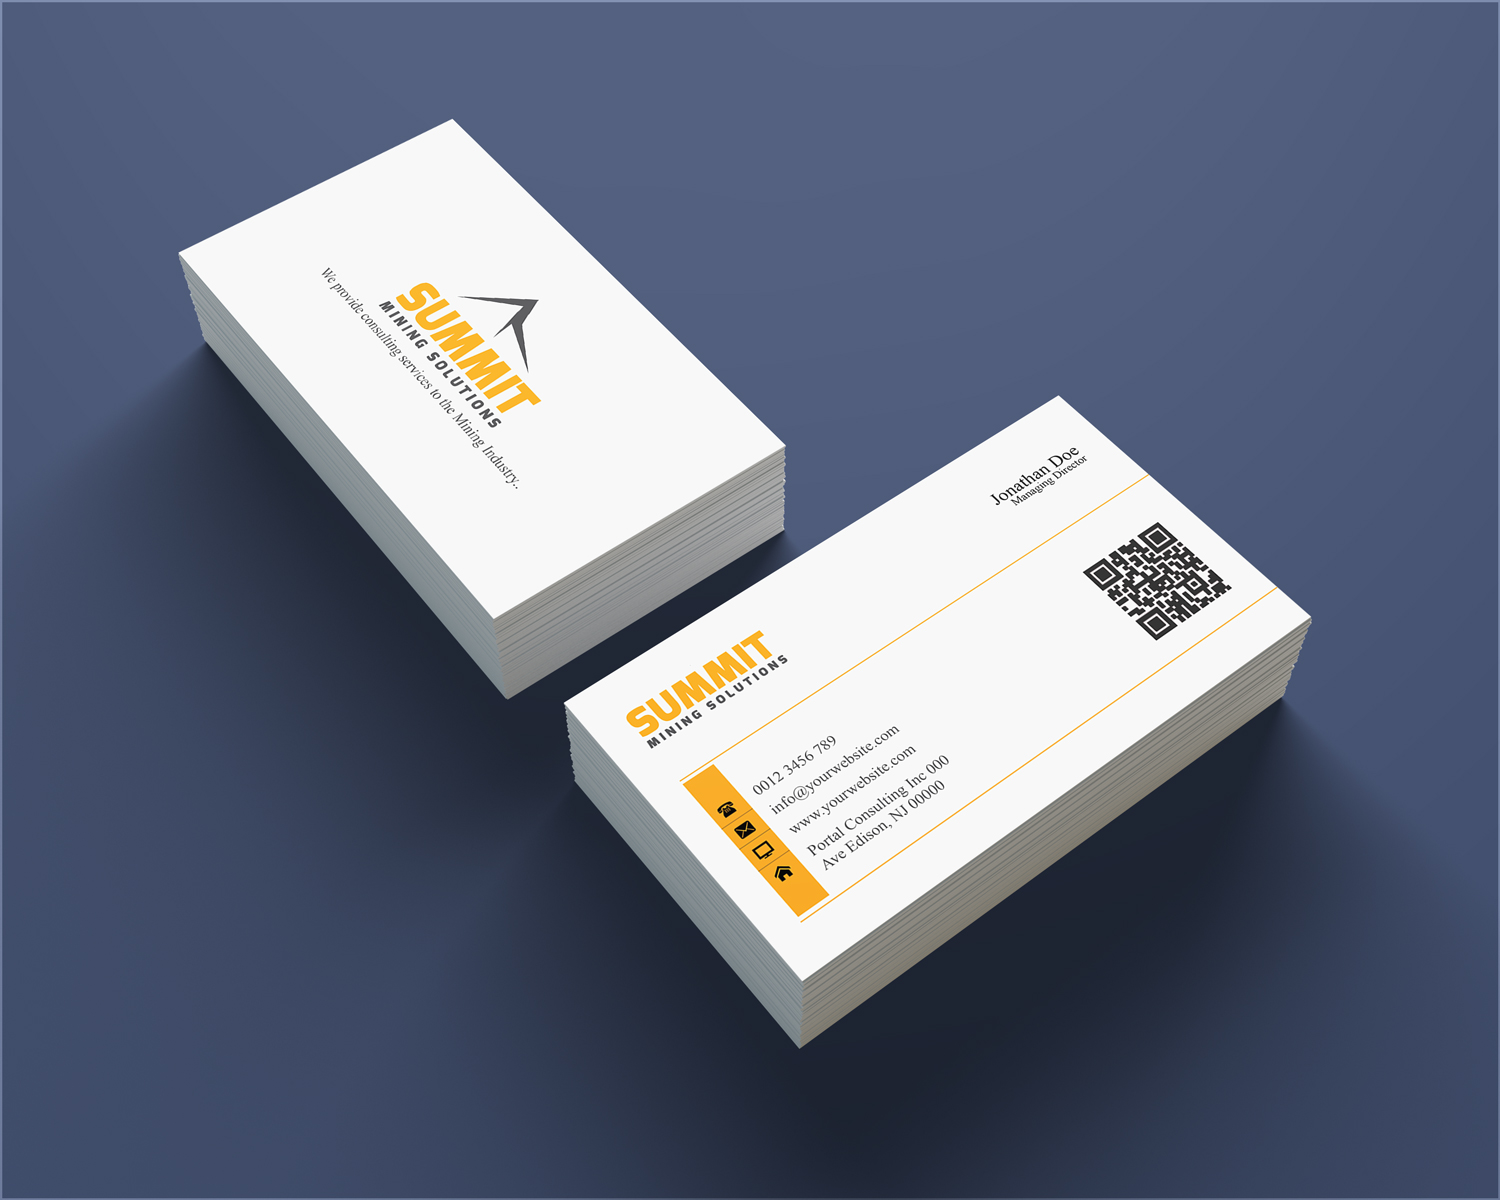 Business card design for greg moore by lanka ama design 4675248 business card design by lanka ama for summit mining solutions business card design 4675248 reheart Choice Image